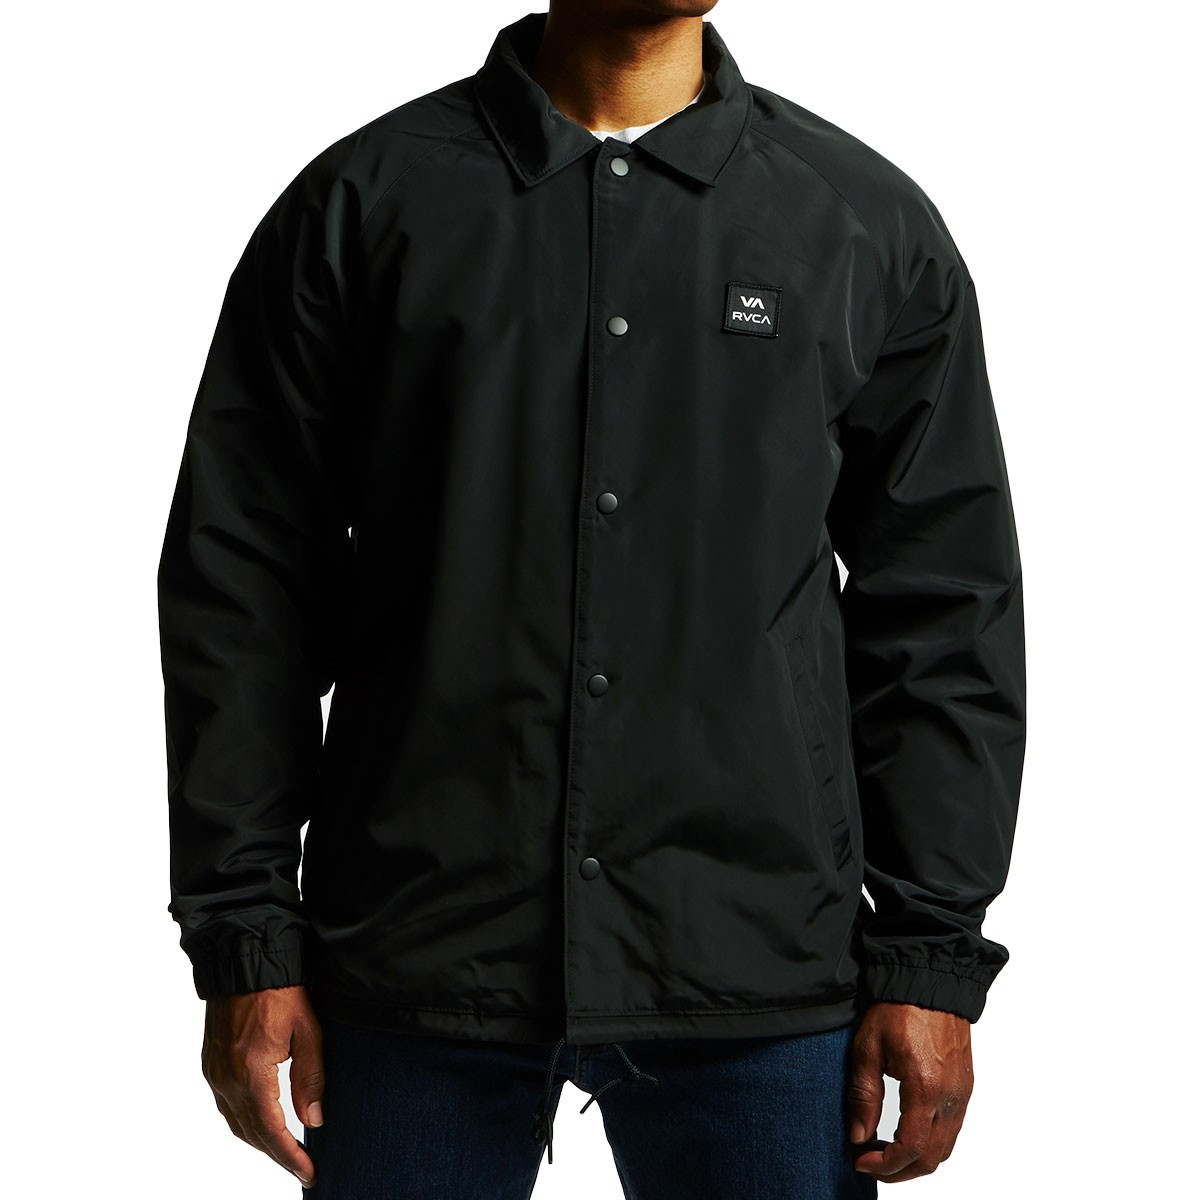 ce335a51a RVCA VA All The Way Coach Jacket - Black